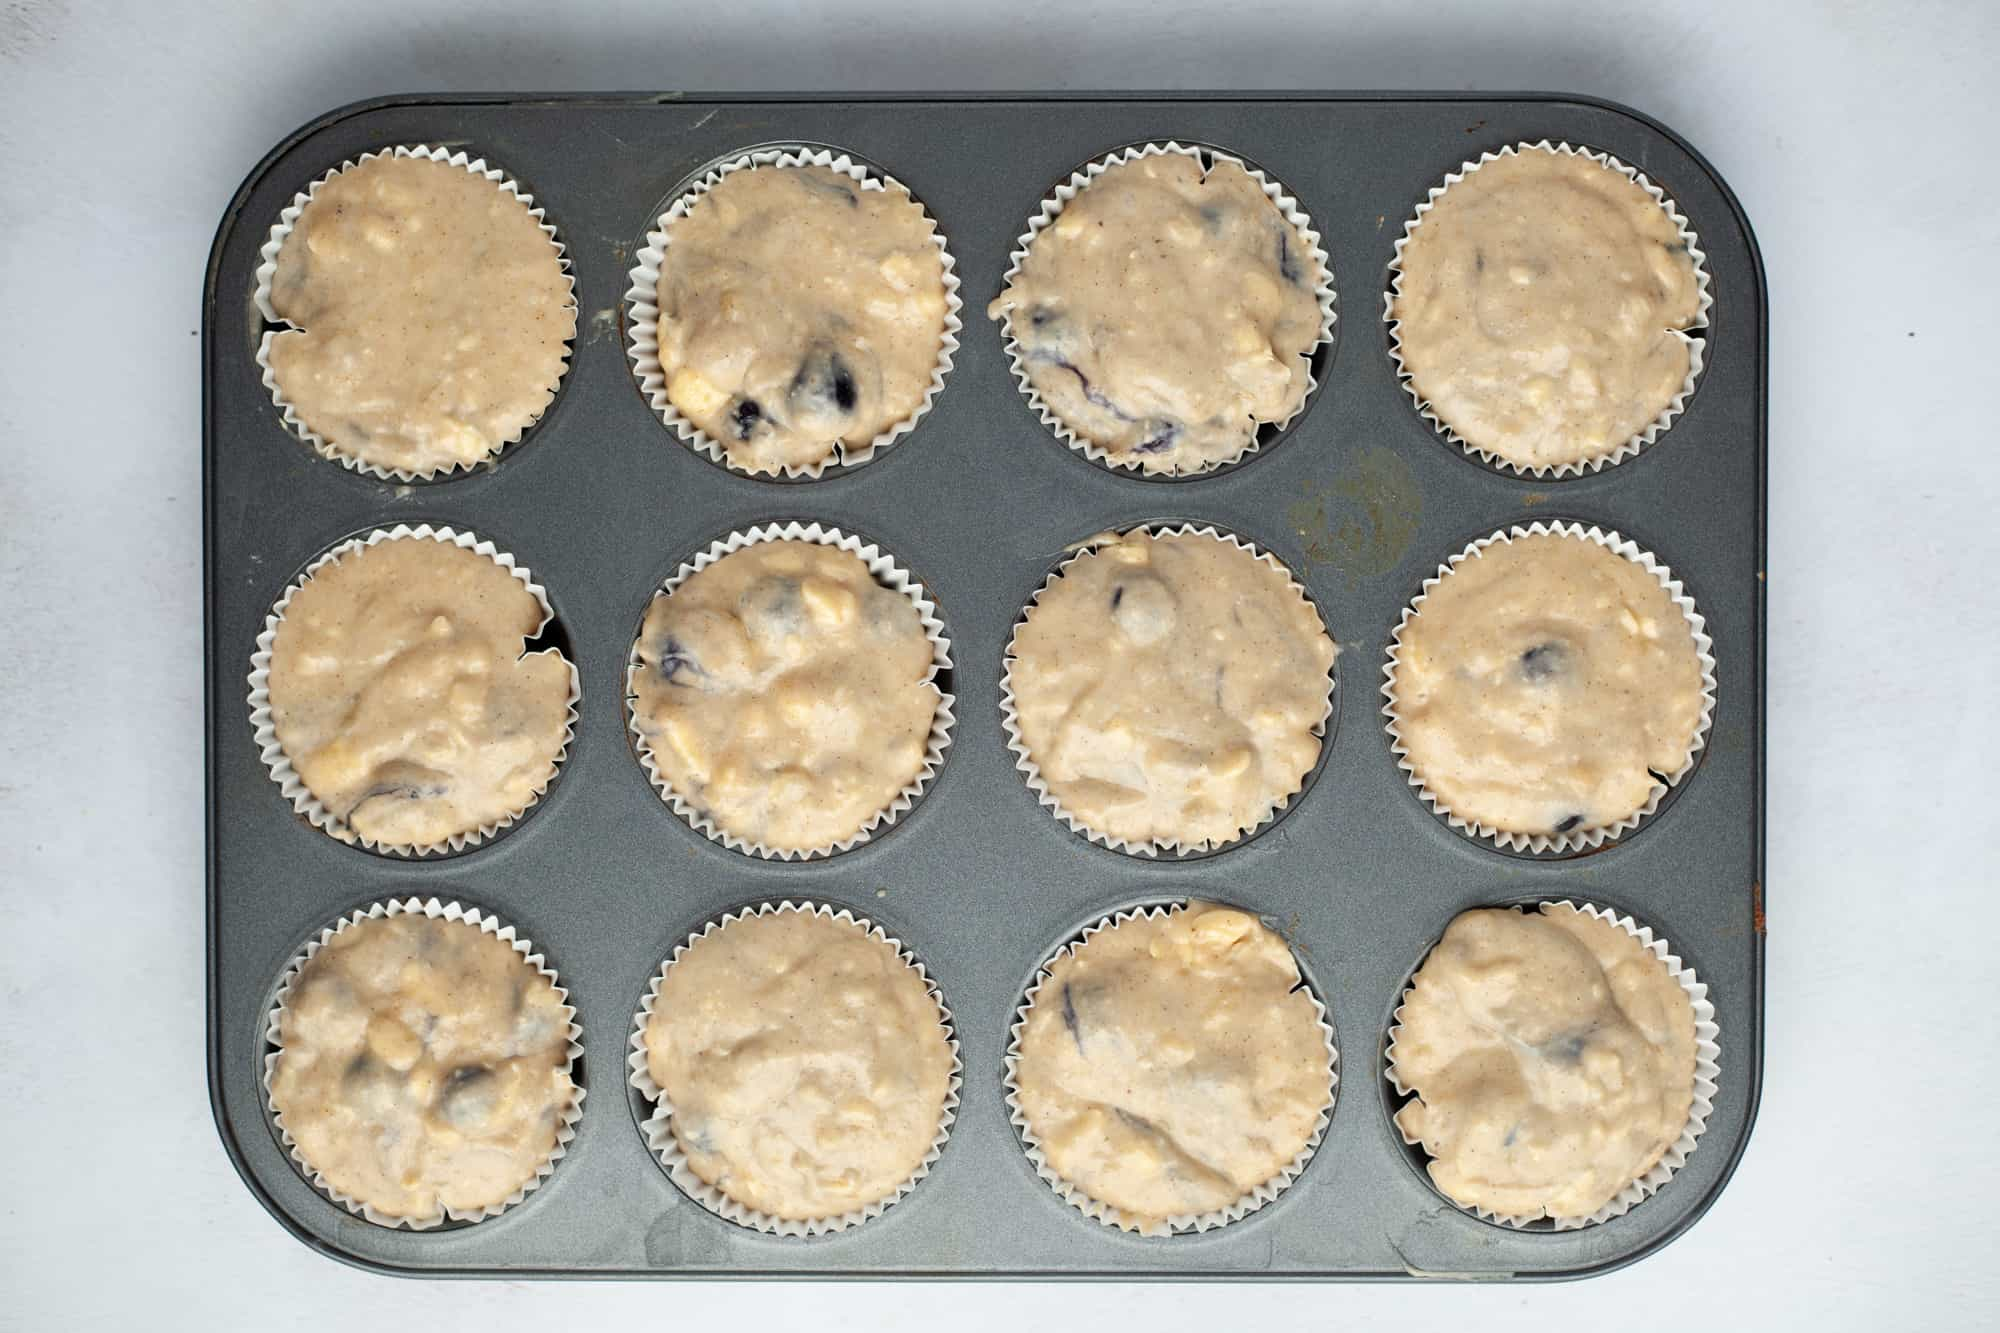 Overhead shot of muffin pan filled with unbaked muffin batter